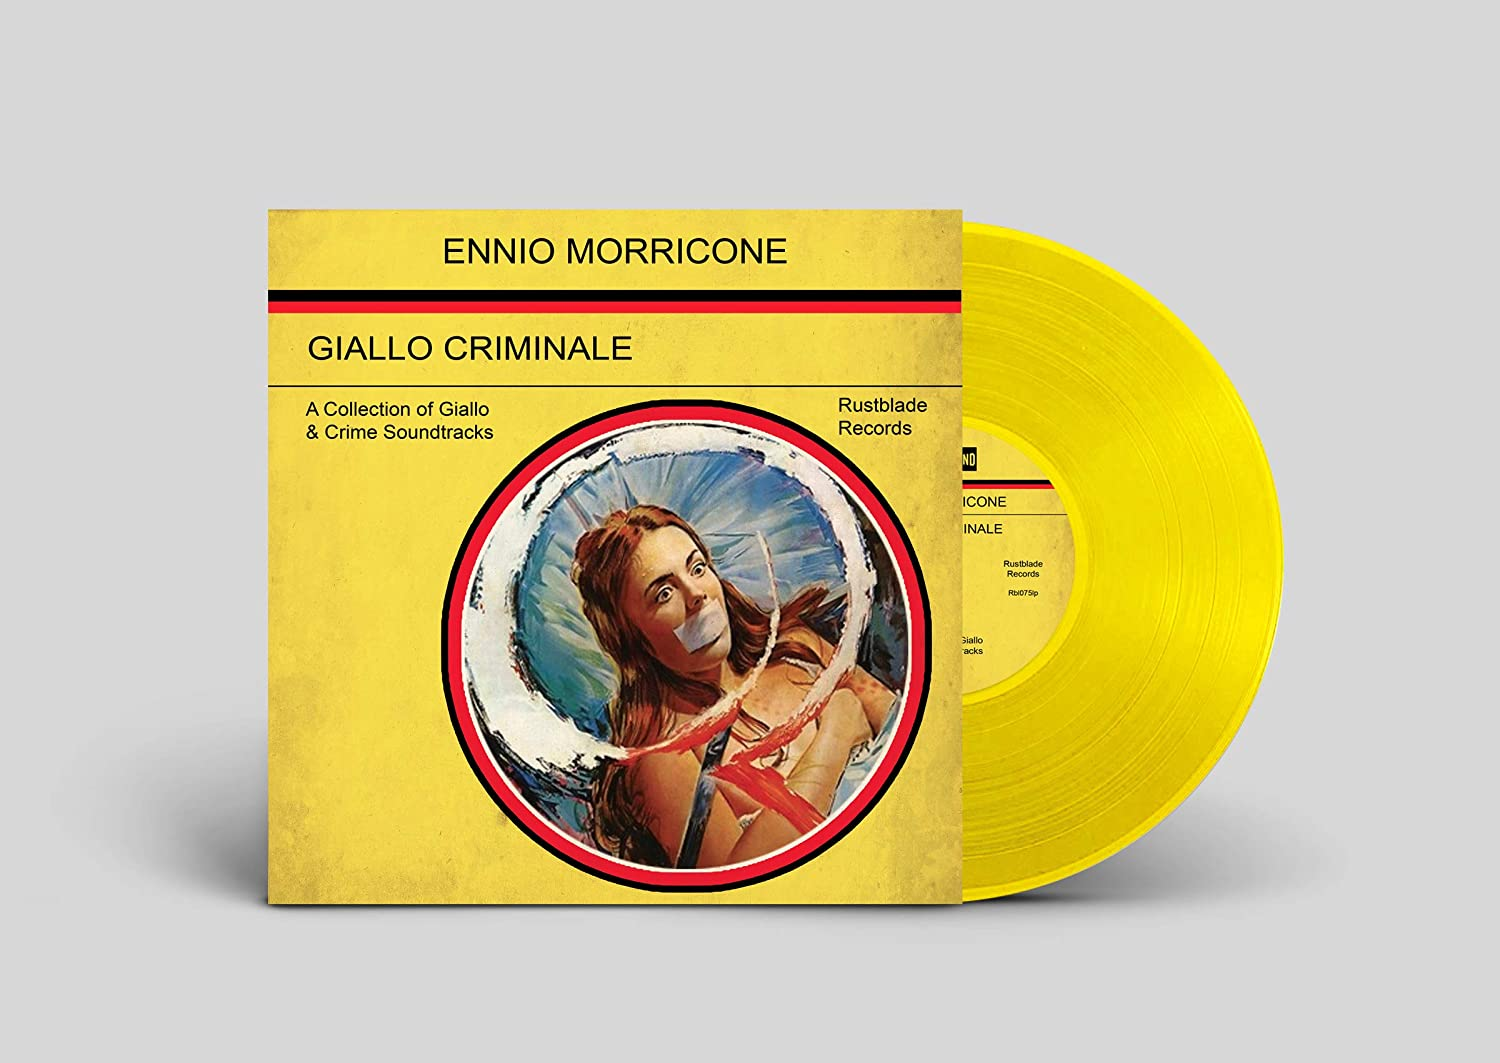 Ennio Morricone - Giallo Criminale [LP] (Yellow Vinyl, limited to 499) - Urban Vinyl | Records, Headphones, and more.